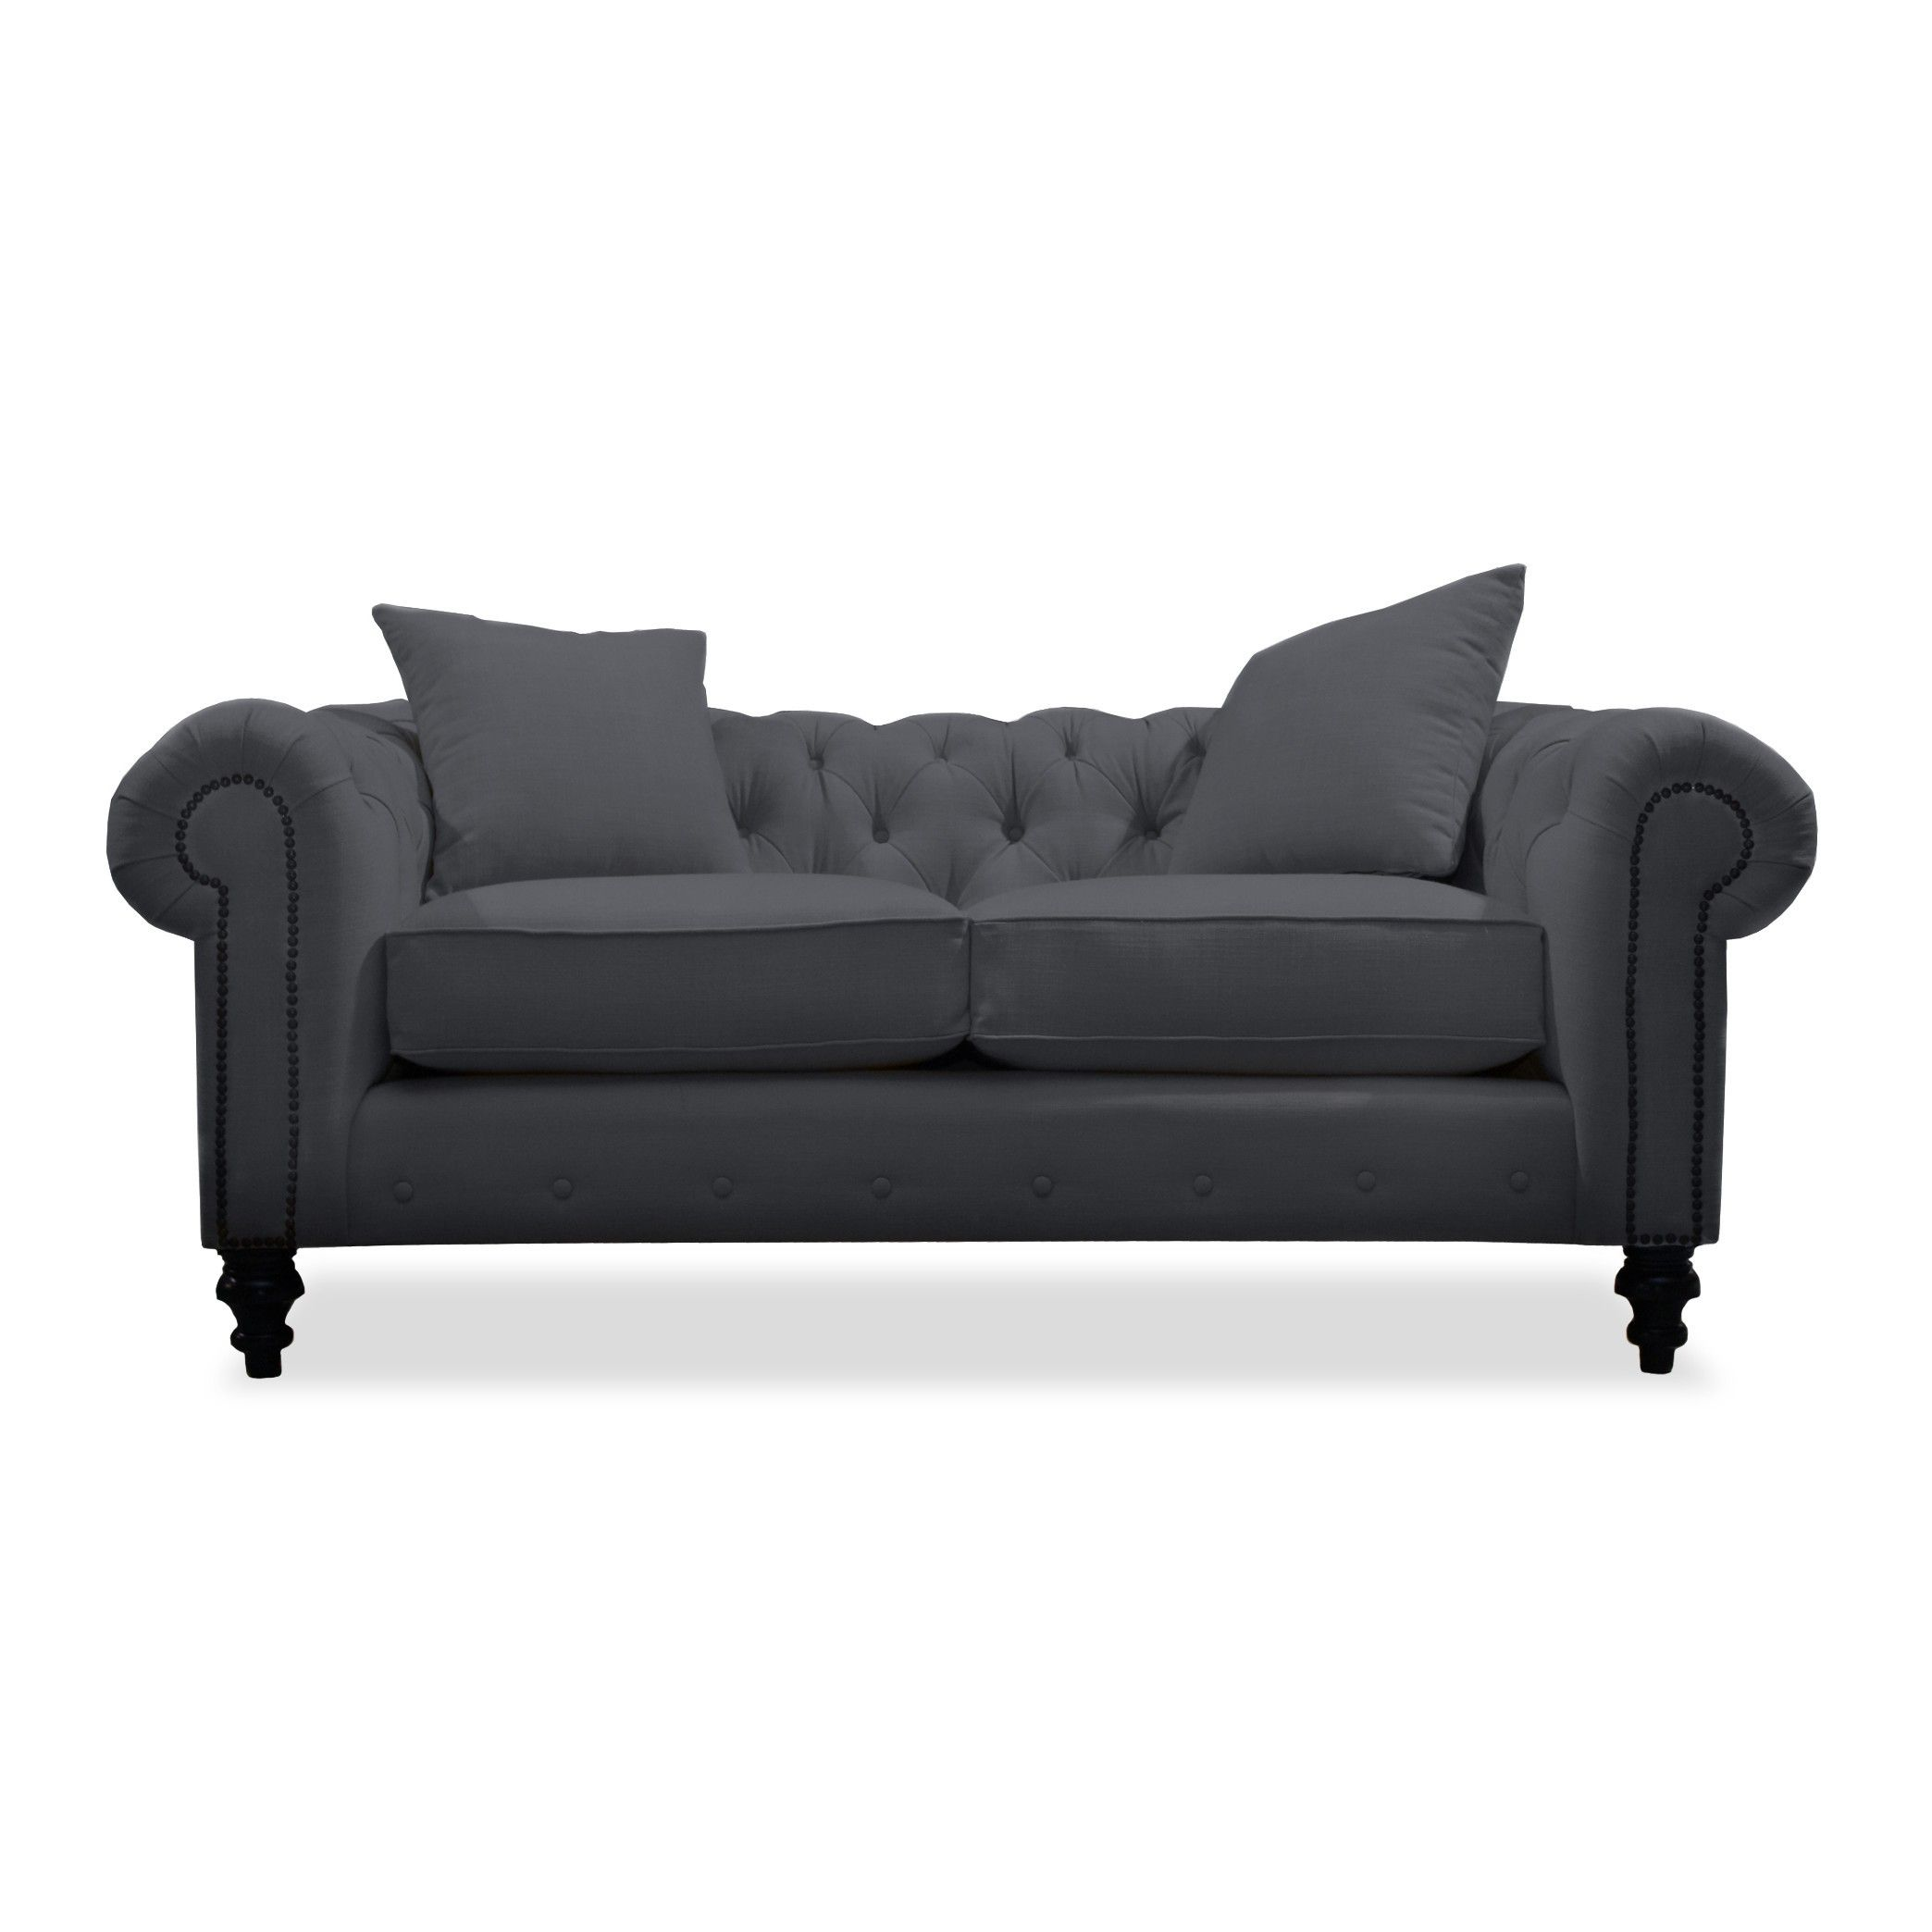 "South Cone Home Hanover Velvet Tufted Sofa 72"" in Charcoal"